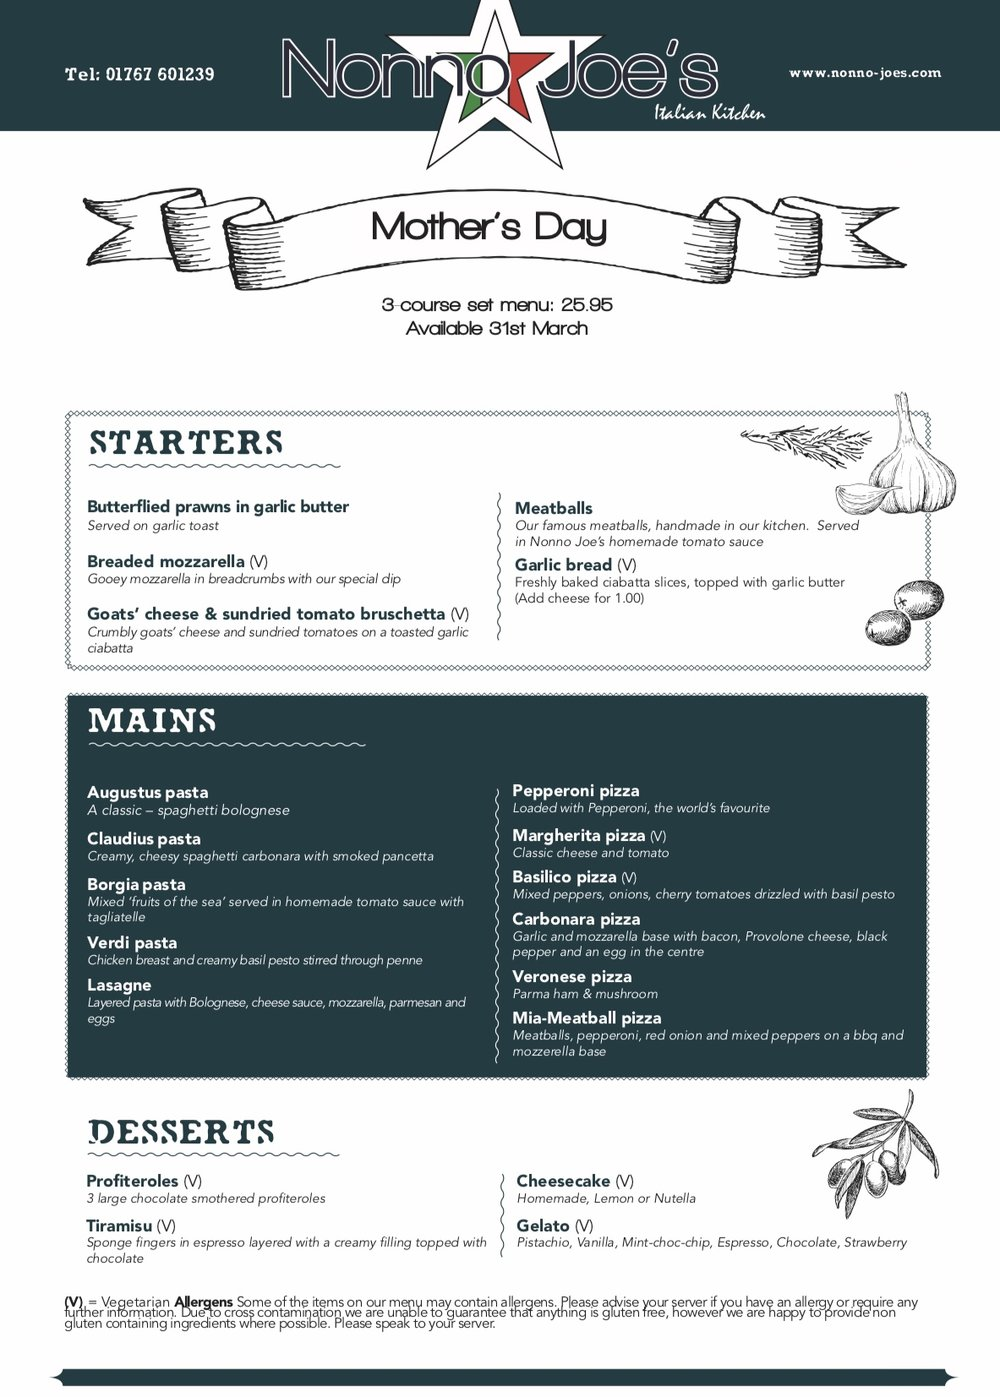 Our Mothers day set menu. OPEN FROM MIDDAY TIL 11PM - TO BOOK CALL 01767 601239. Or fill out a booking request here on our website.